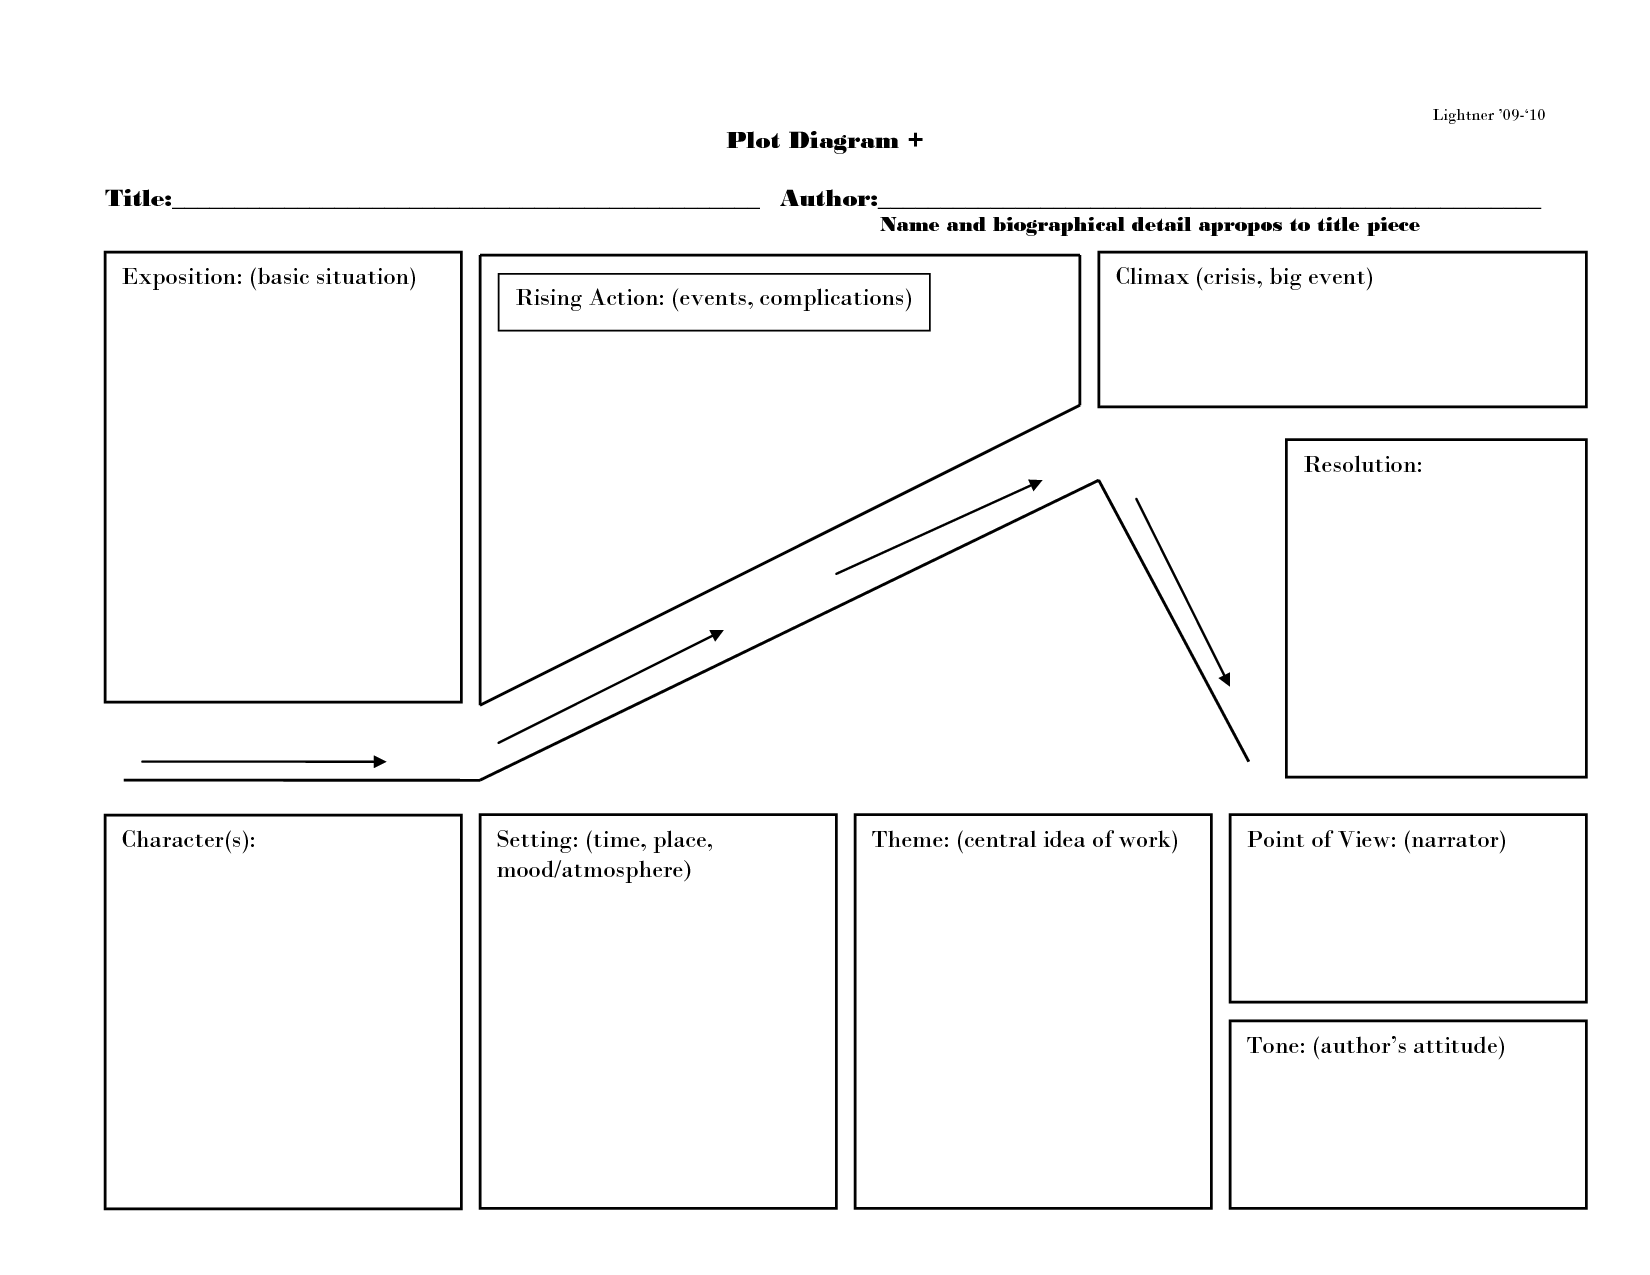 plot diagram | plot diagram 09 10 - plot diagram + | fourth grade